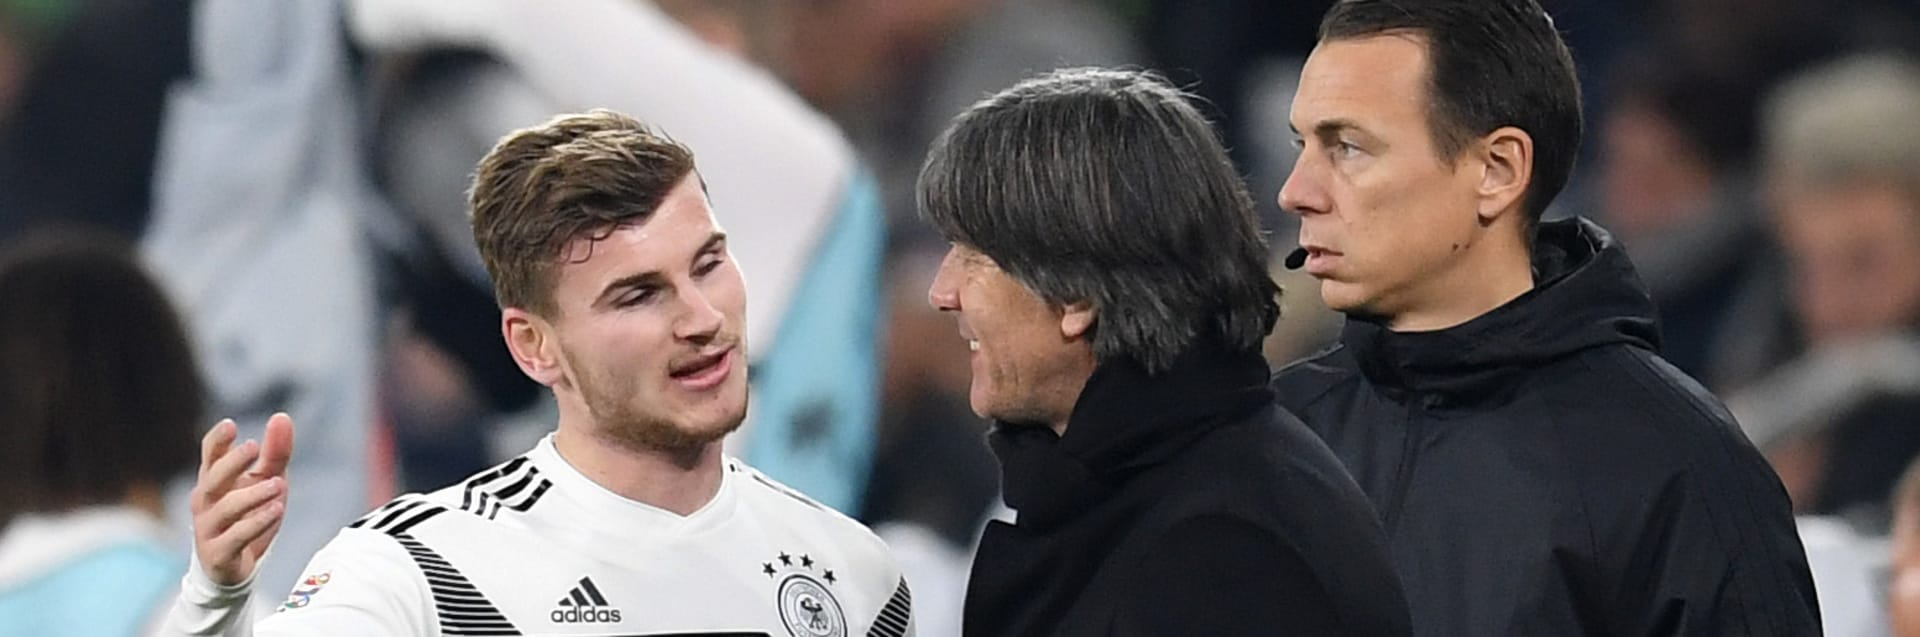 GELSENKIRCHEN, GERMANY - NOVEMBER 19:  Timo Werner of Germany speaks to Joachim Loew, Manager of Germany as he is substituted during the UEFA Nations League A group one match between Germany and Netherlands at Veltins-Arena on November 19, 2018 in Gelsenkirchen, Germany.  (Photo by Matthias Hangst/Bongarts/Getty Images)